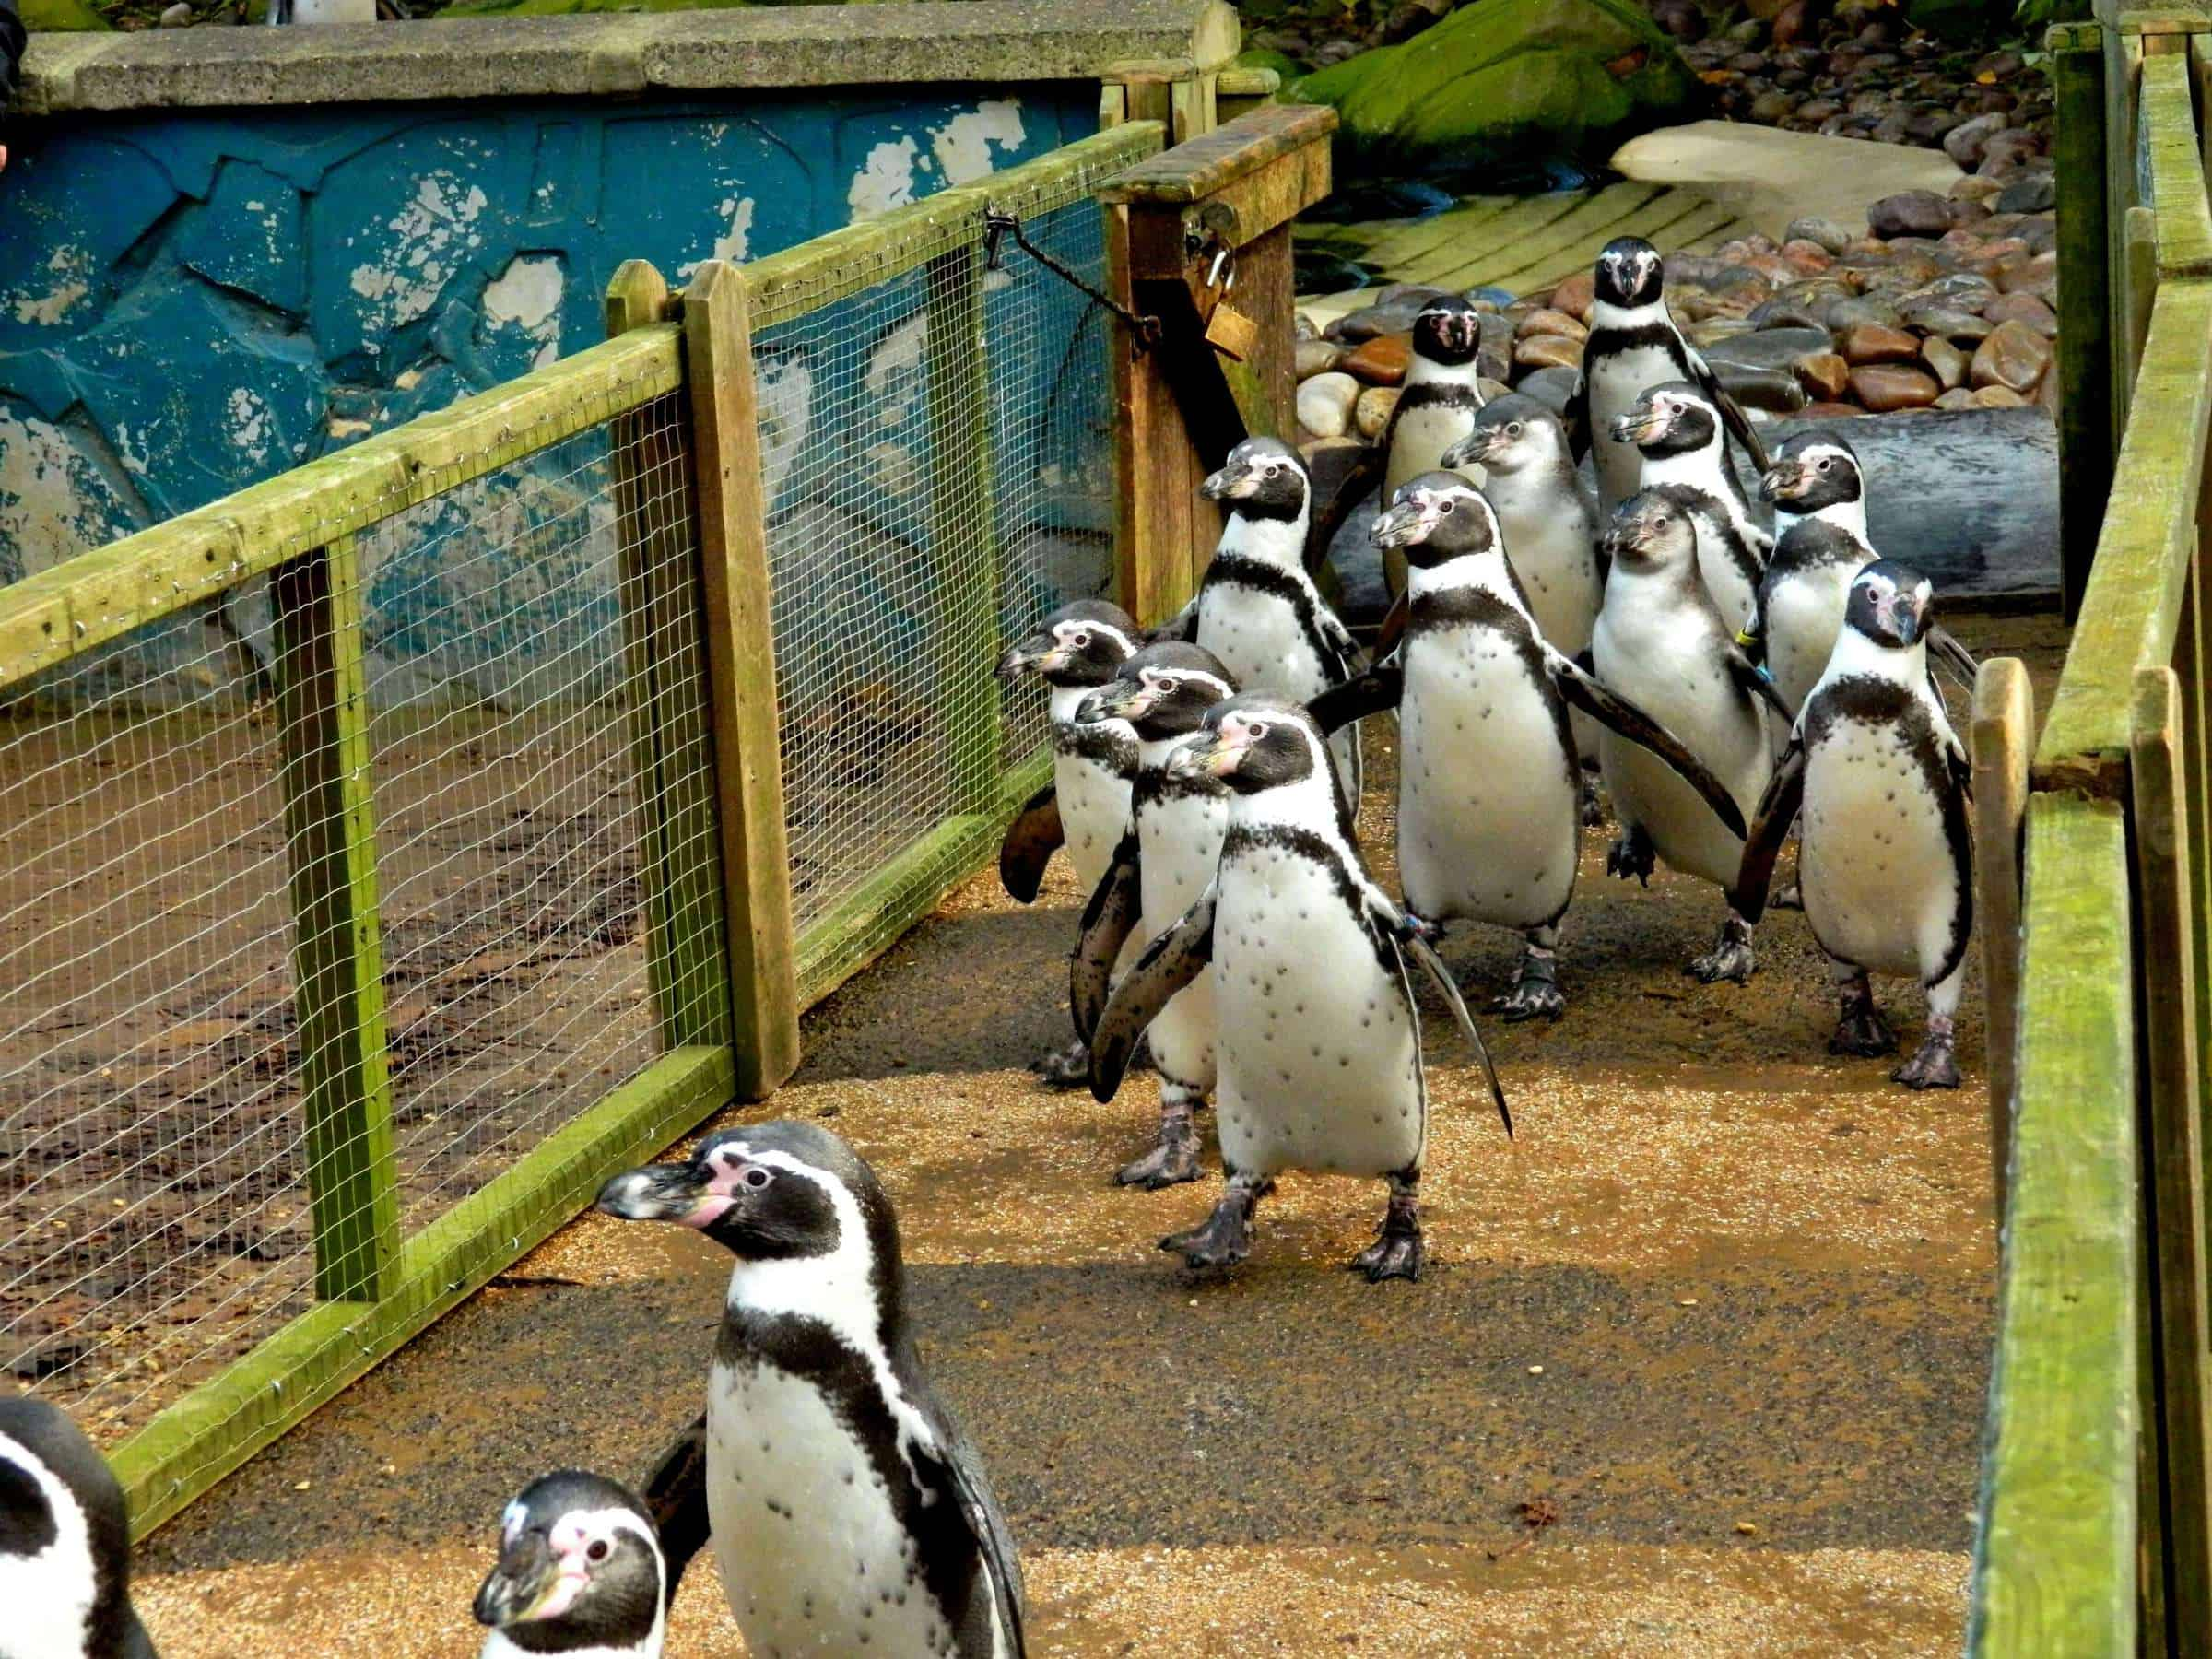 Penguin encounters at Twycross Zoo